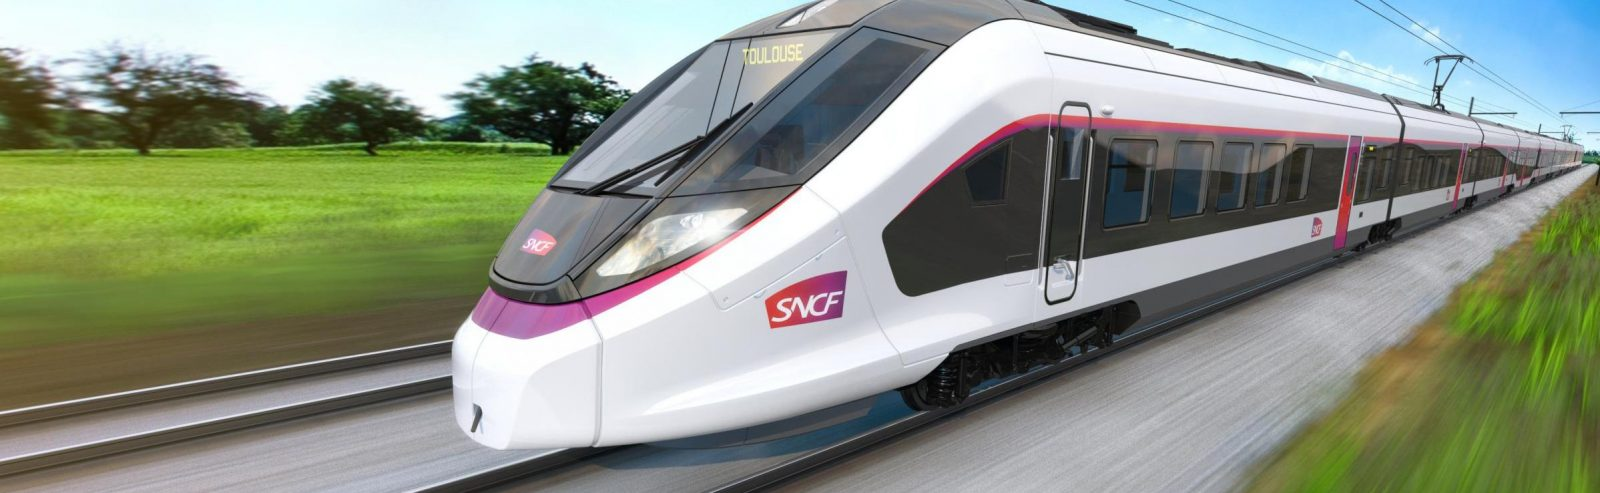 [FR] SNCF: CAF is the preferred supplier for our new long distance trains